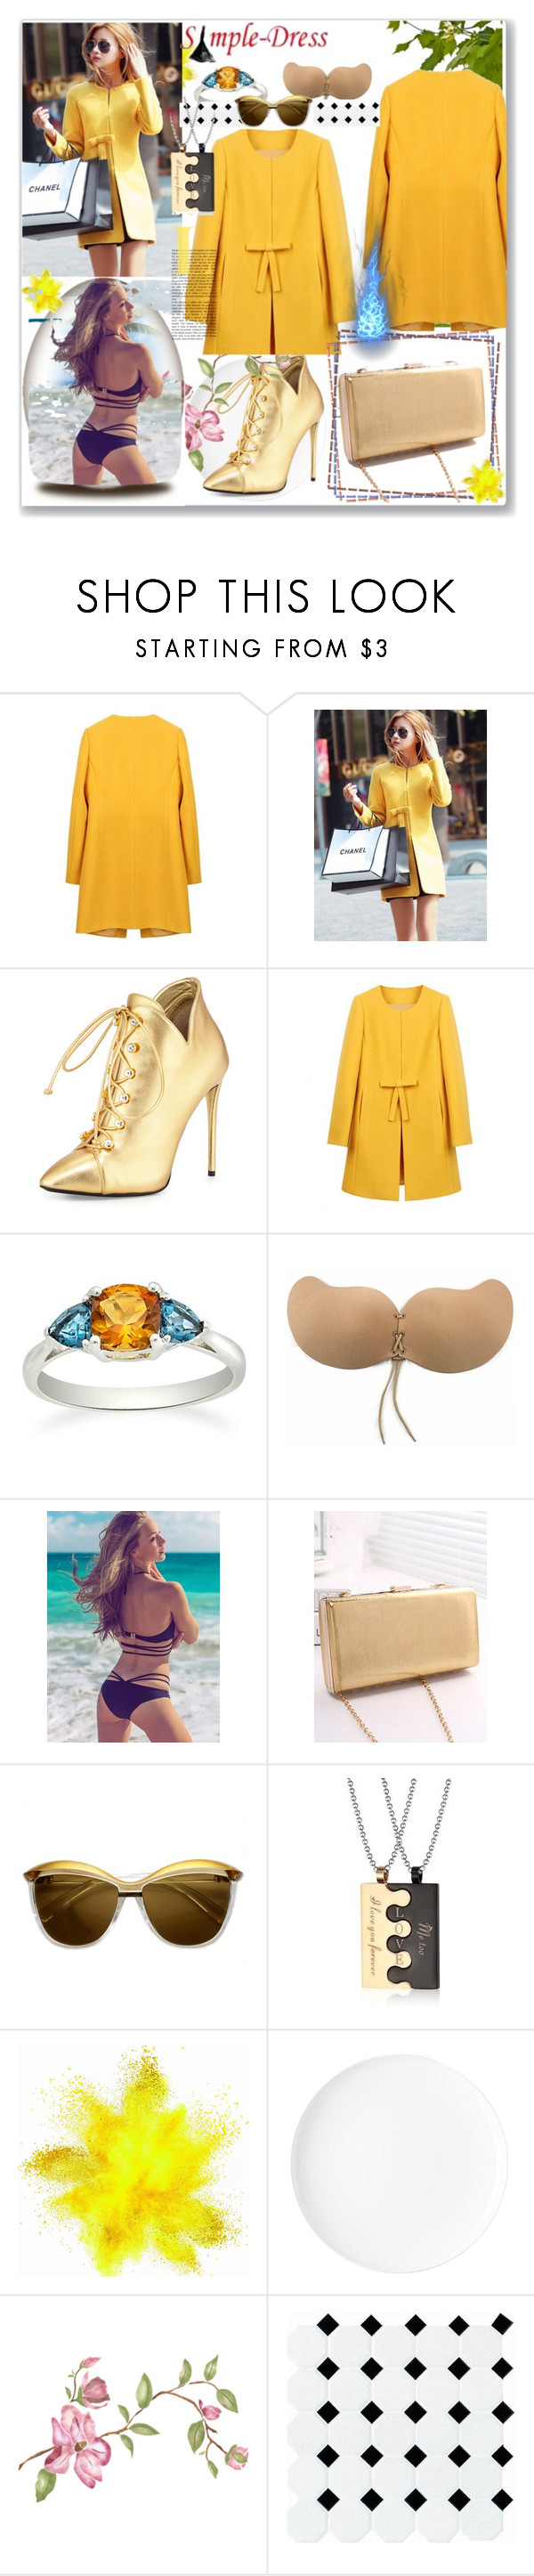 """www.simple-dress.com 7"" by ane-twist ❤ liked on Polyvore featuring Giuseppe Zanotti, modern and simpledress"